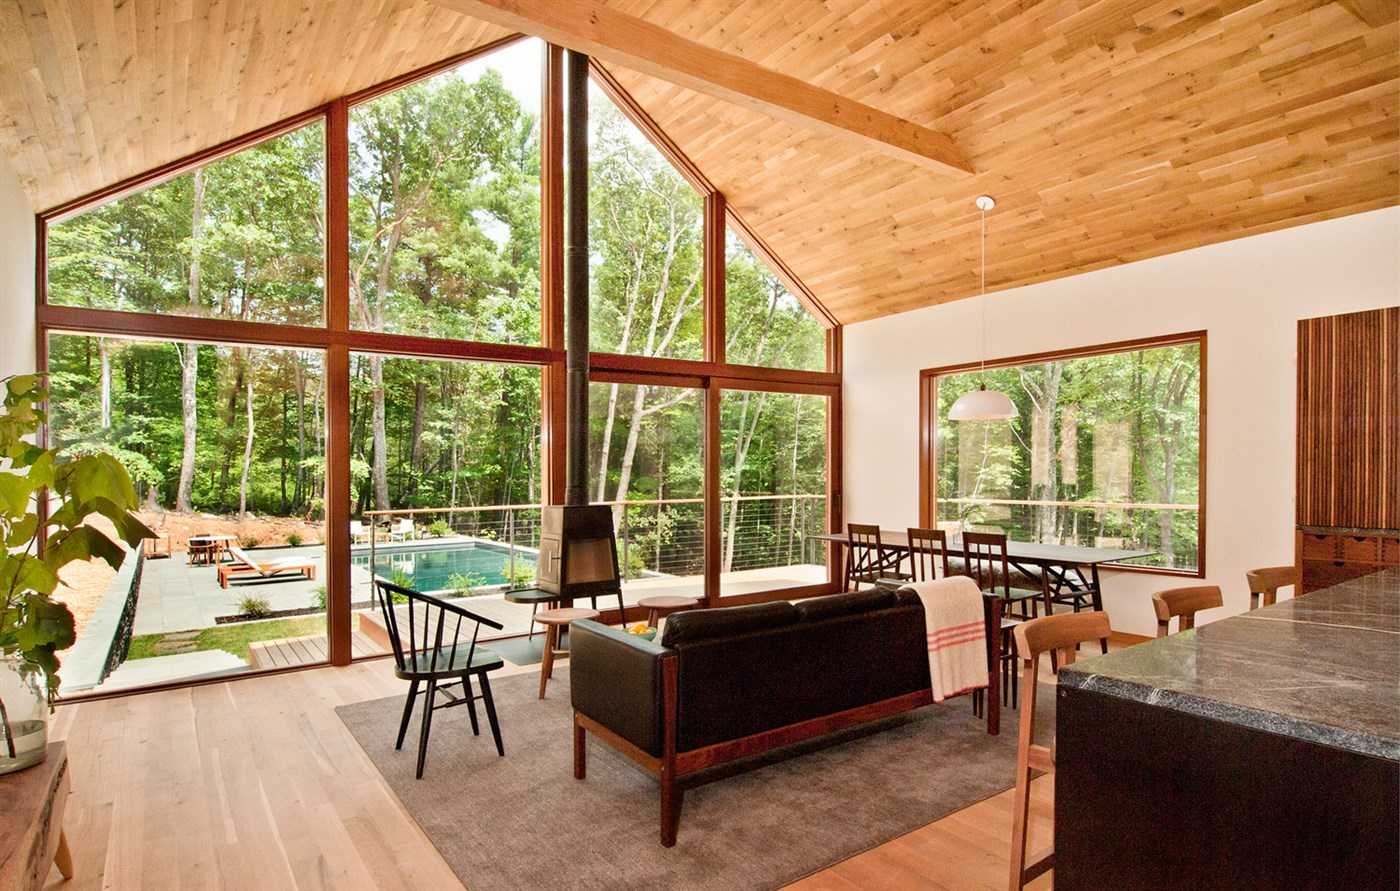 wood floor and ceiling with beam, wooden chair, table and sofa, living room design ideas